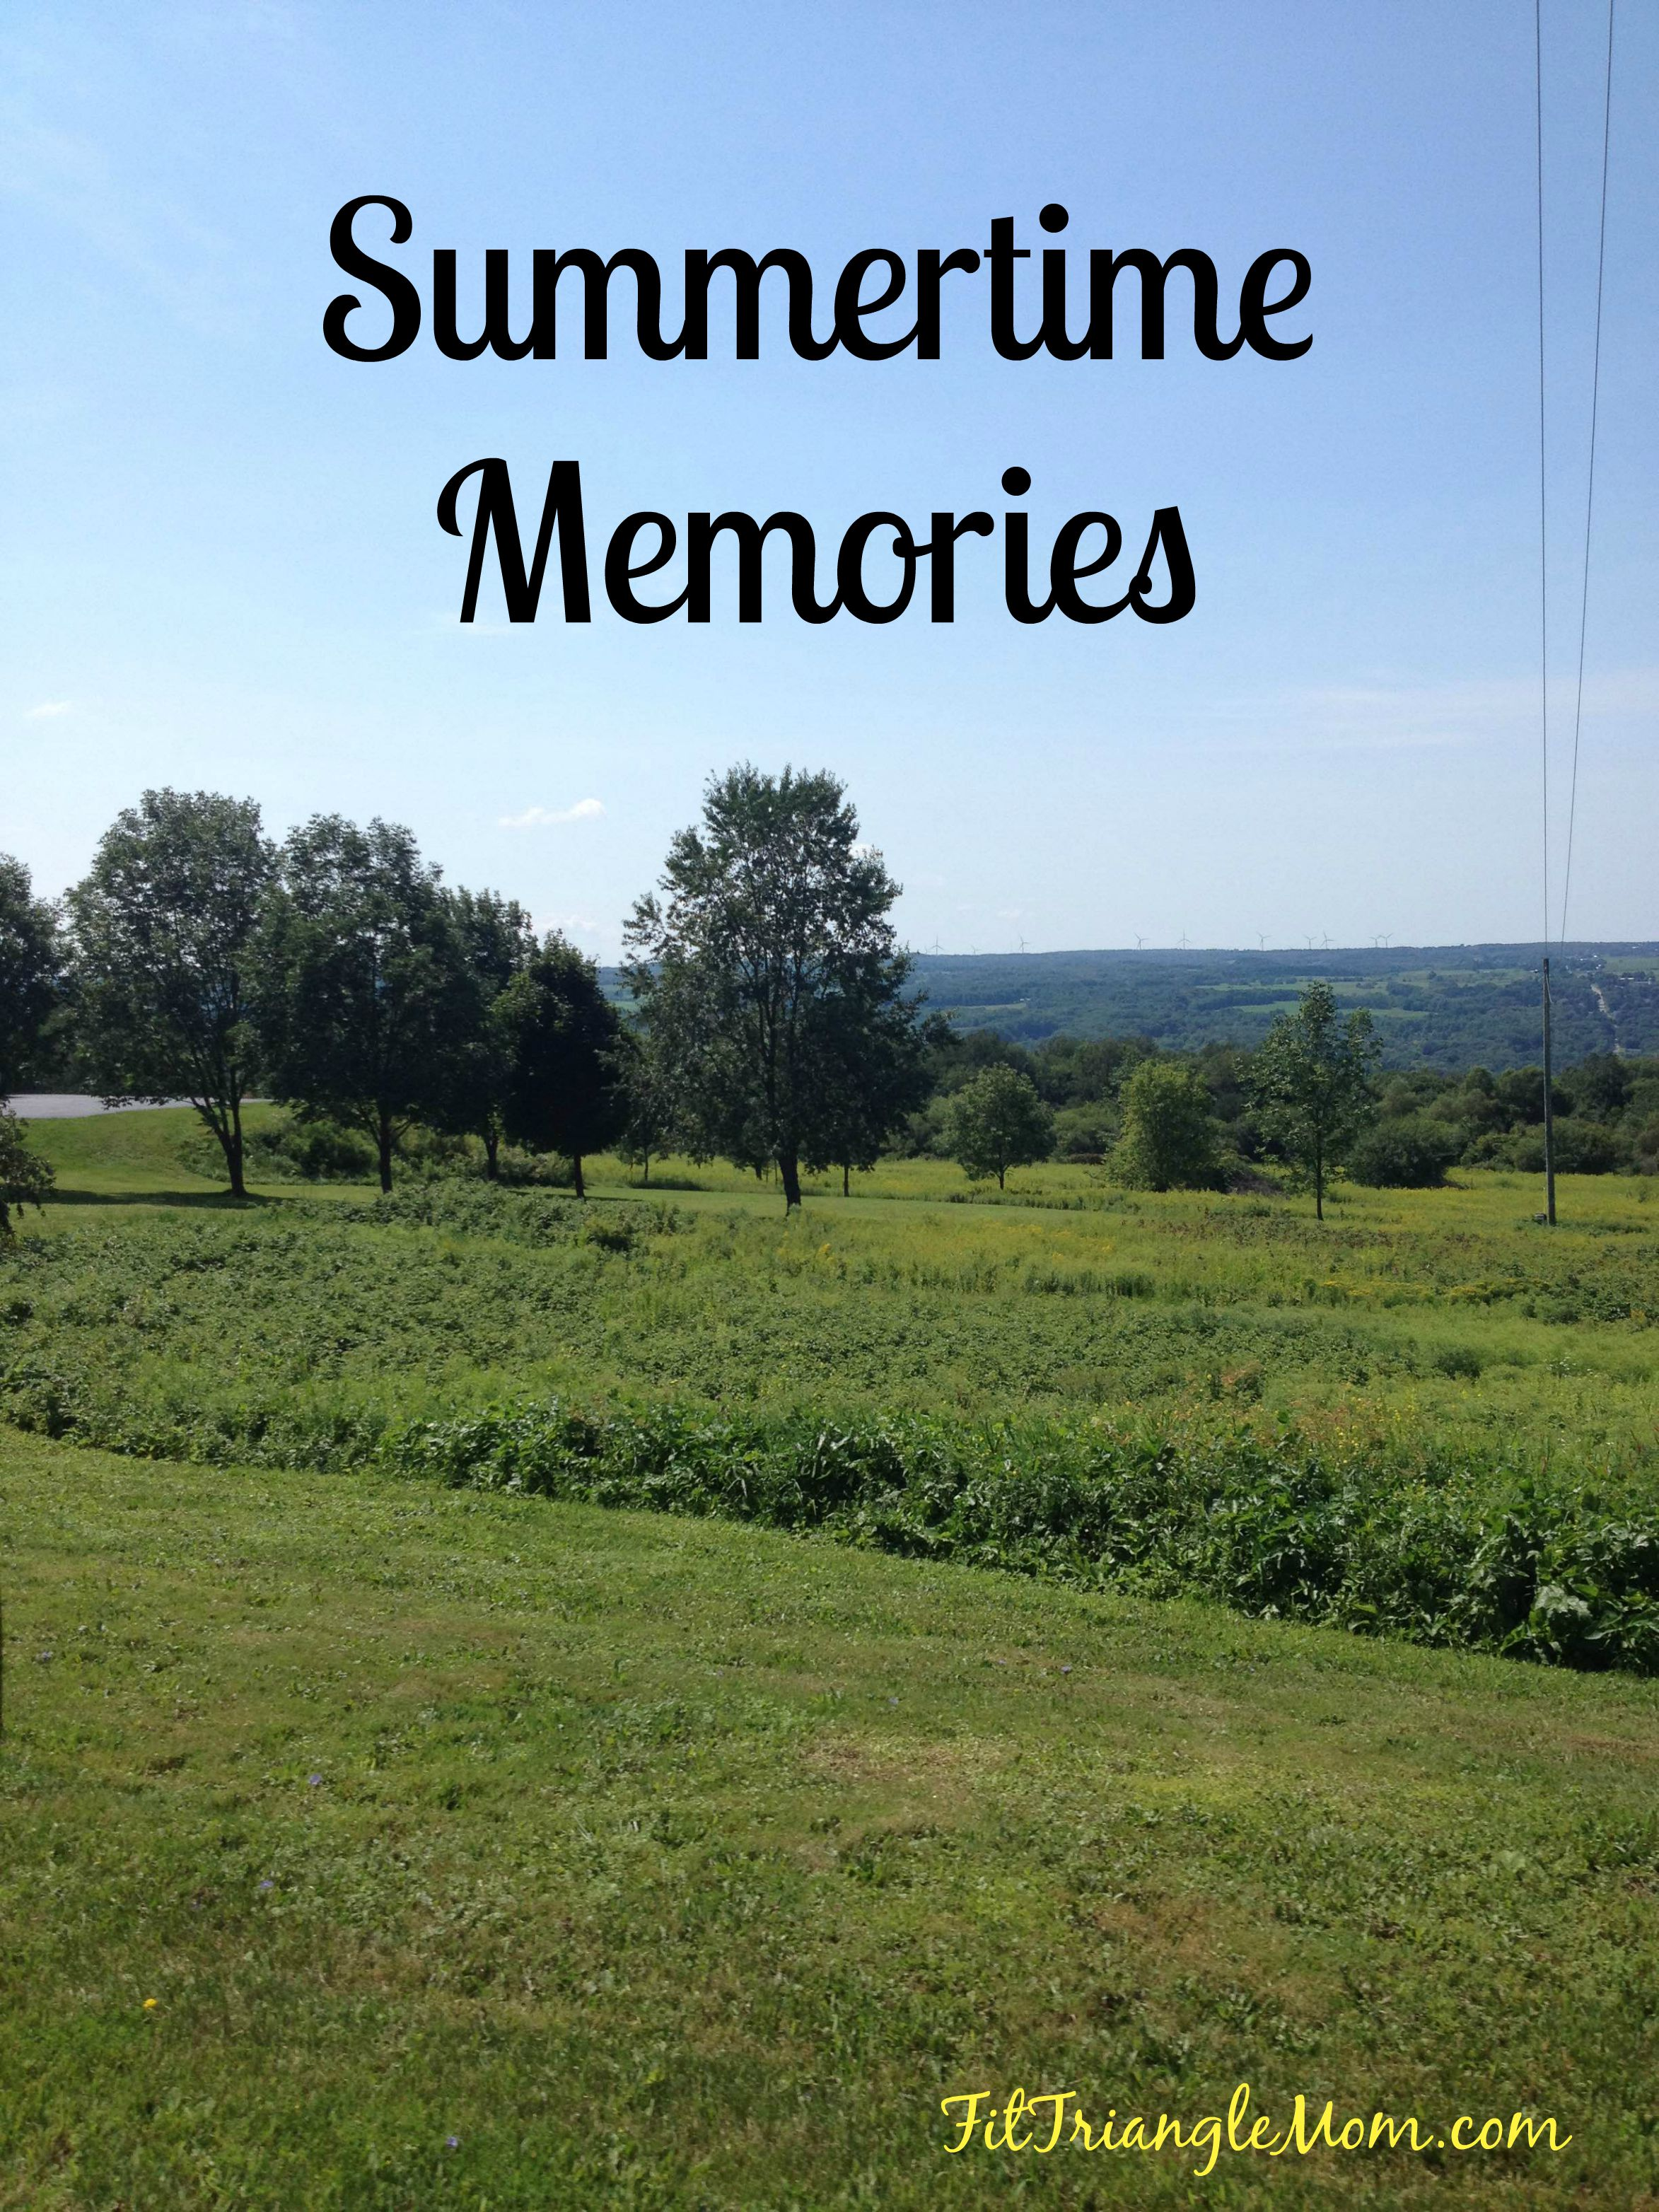 Summertime Childhood memories. Part 1 of our trip to #WesternNY